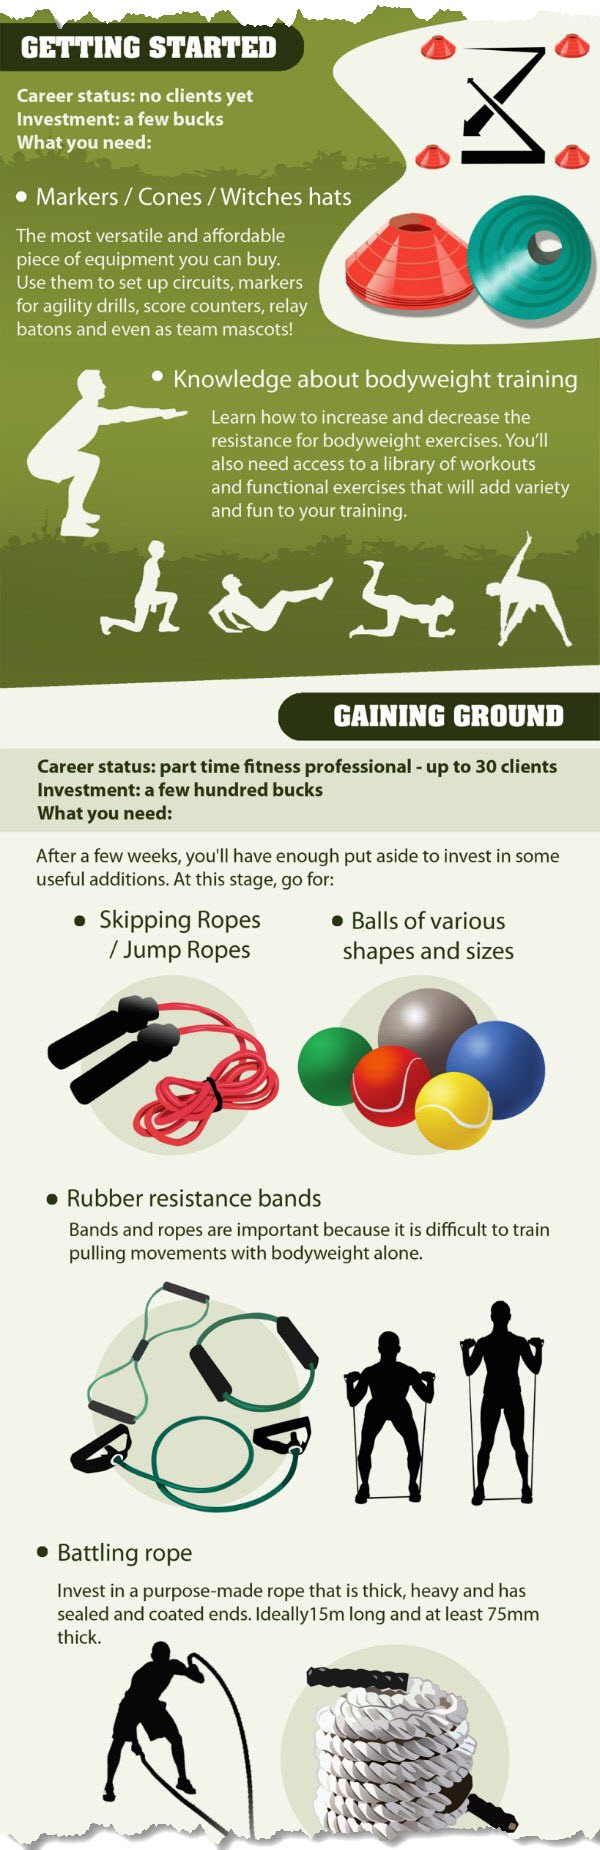 Fitness Bootcamp Equipment Gear Guide by Kaizen Outdoor Fitness